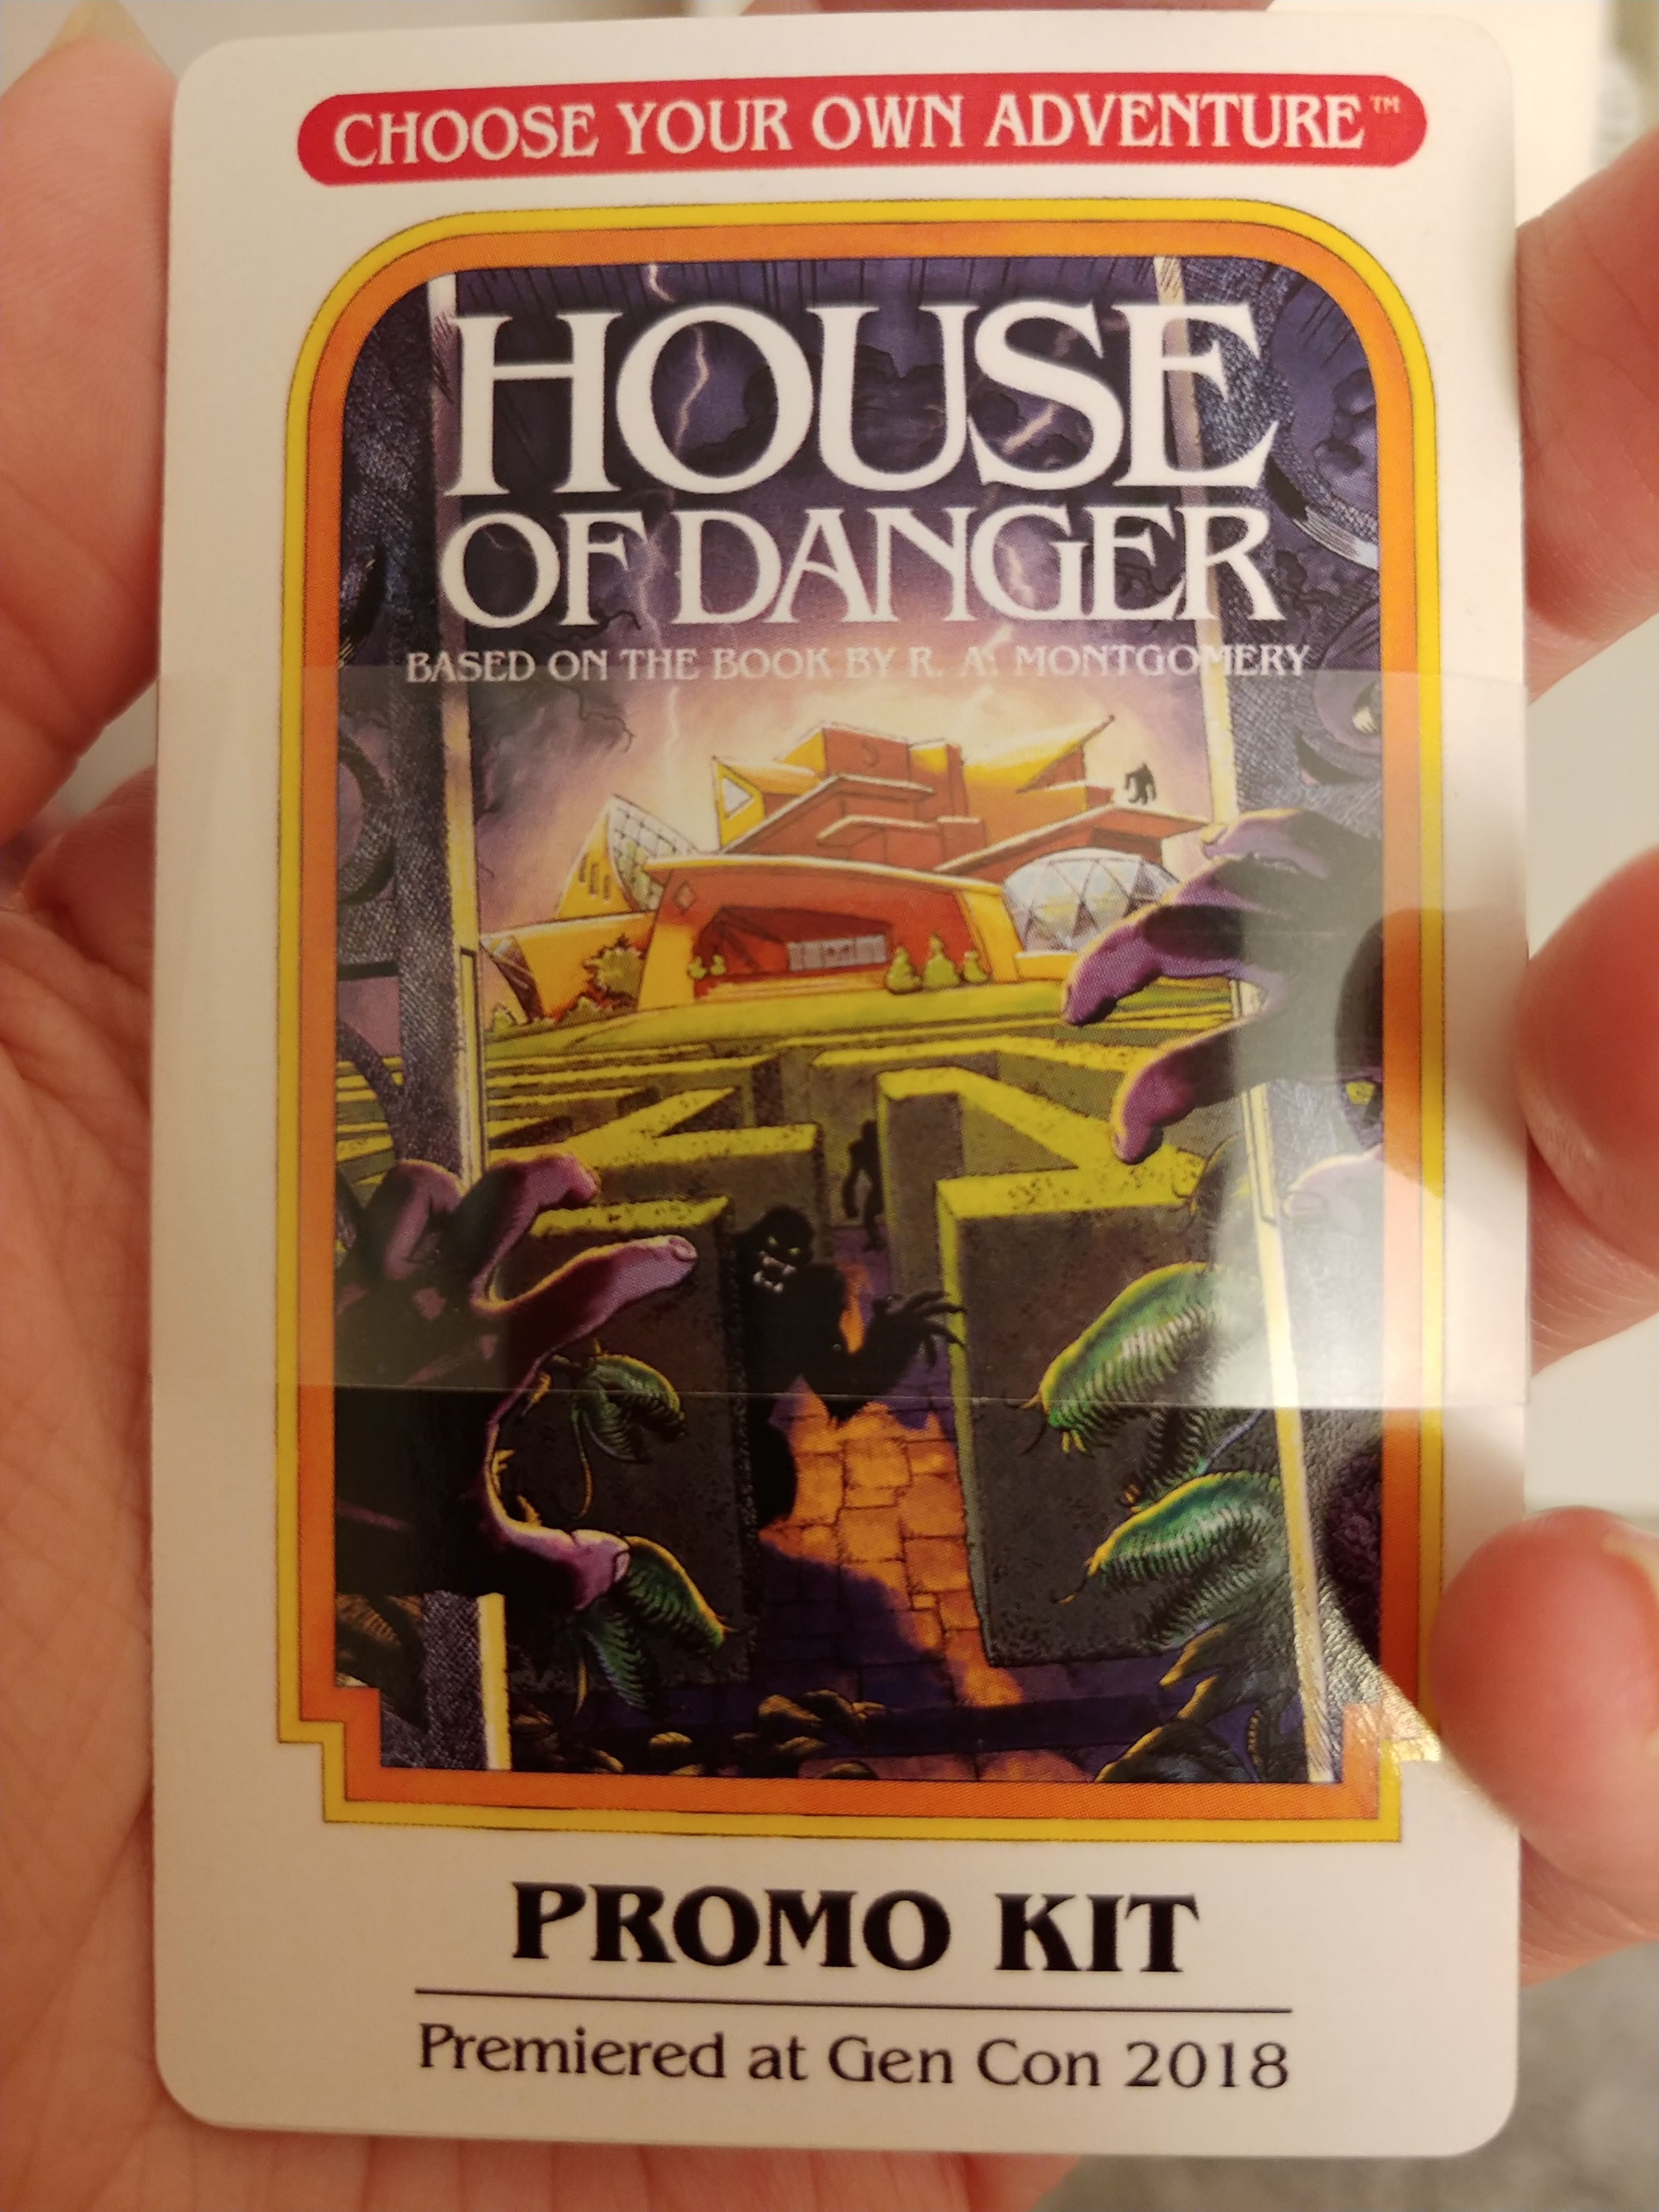 Choose Your Own Adventure: House of Danger – Game Convention Promo Kit